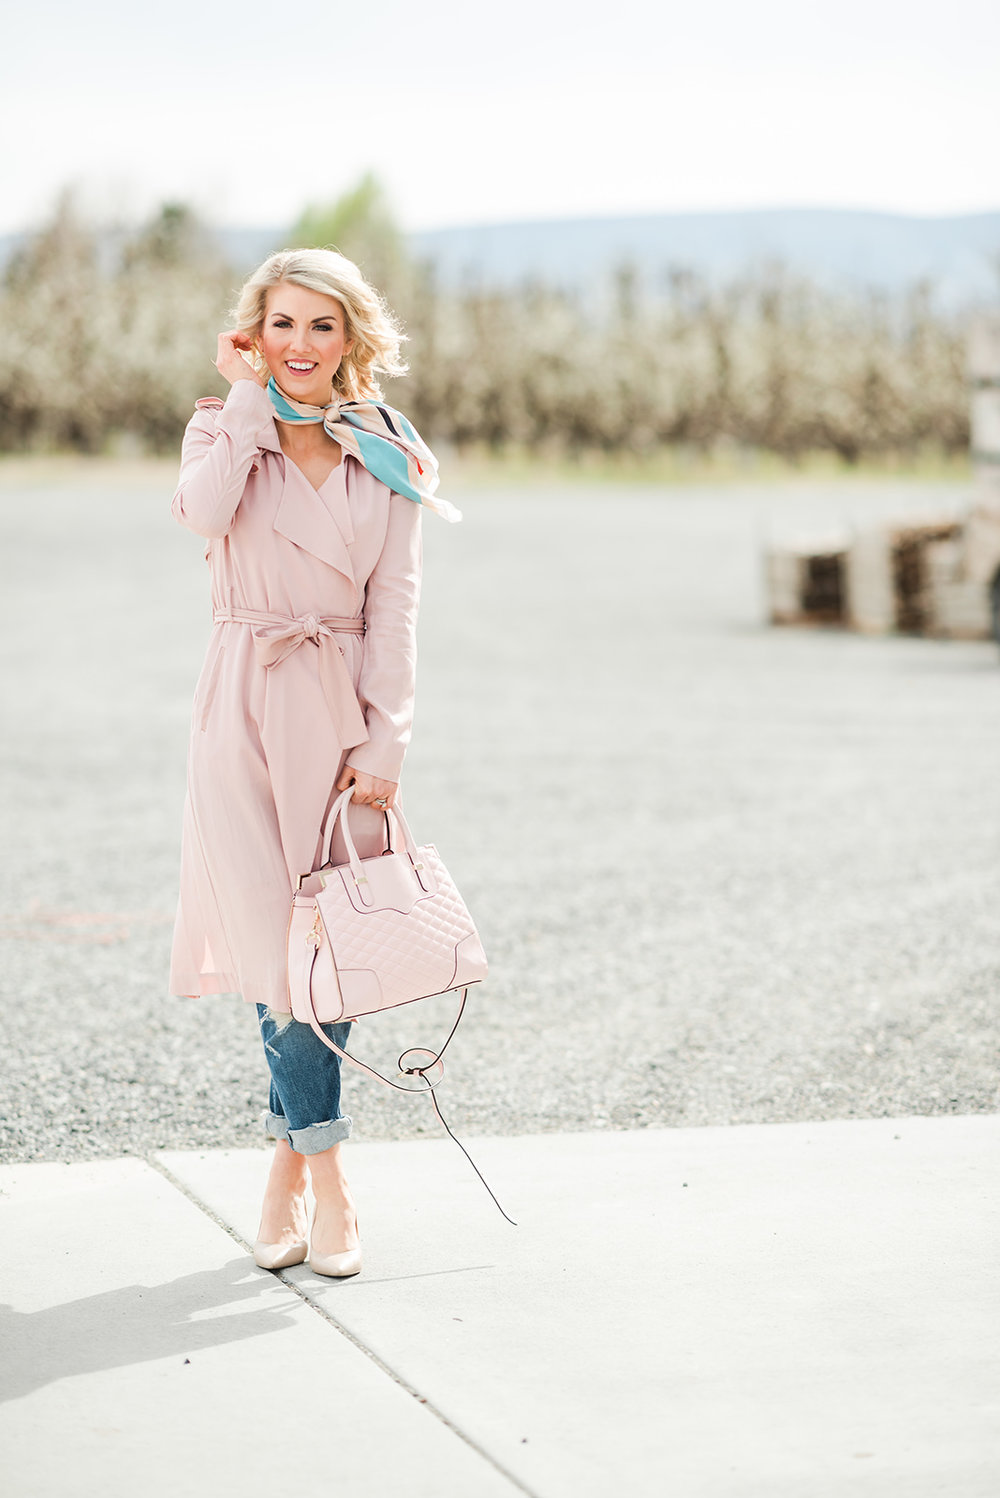 Quick tips on how to style a trench coat! - Trench coats are super in this season! Read this to learn how to style a trench.